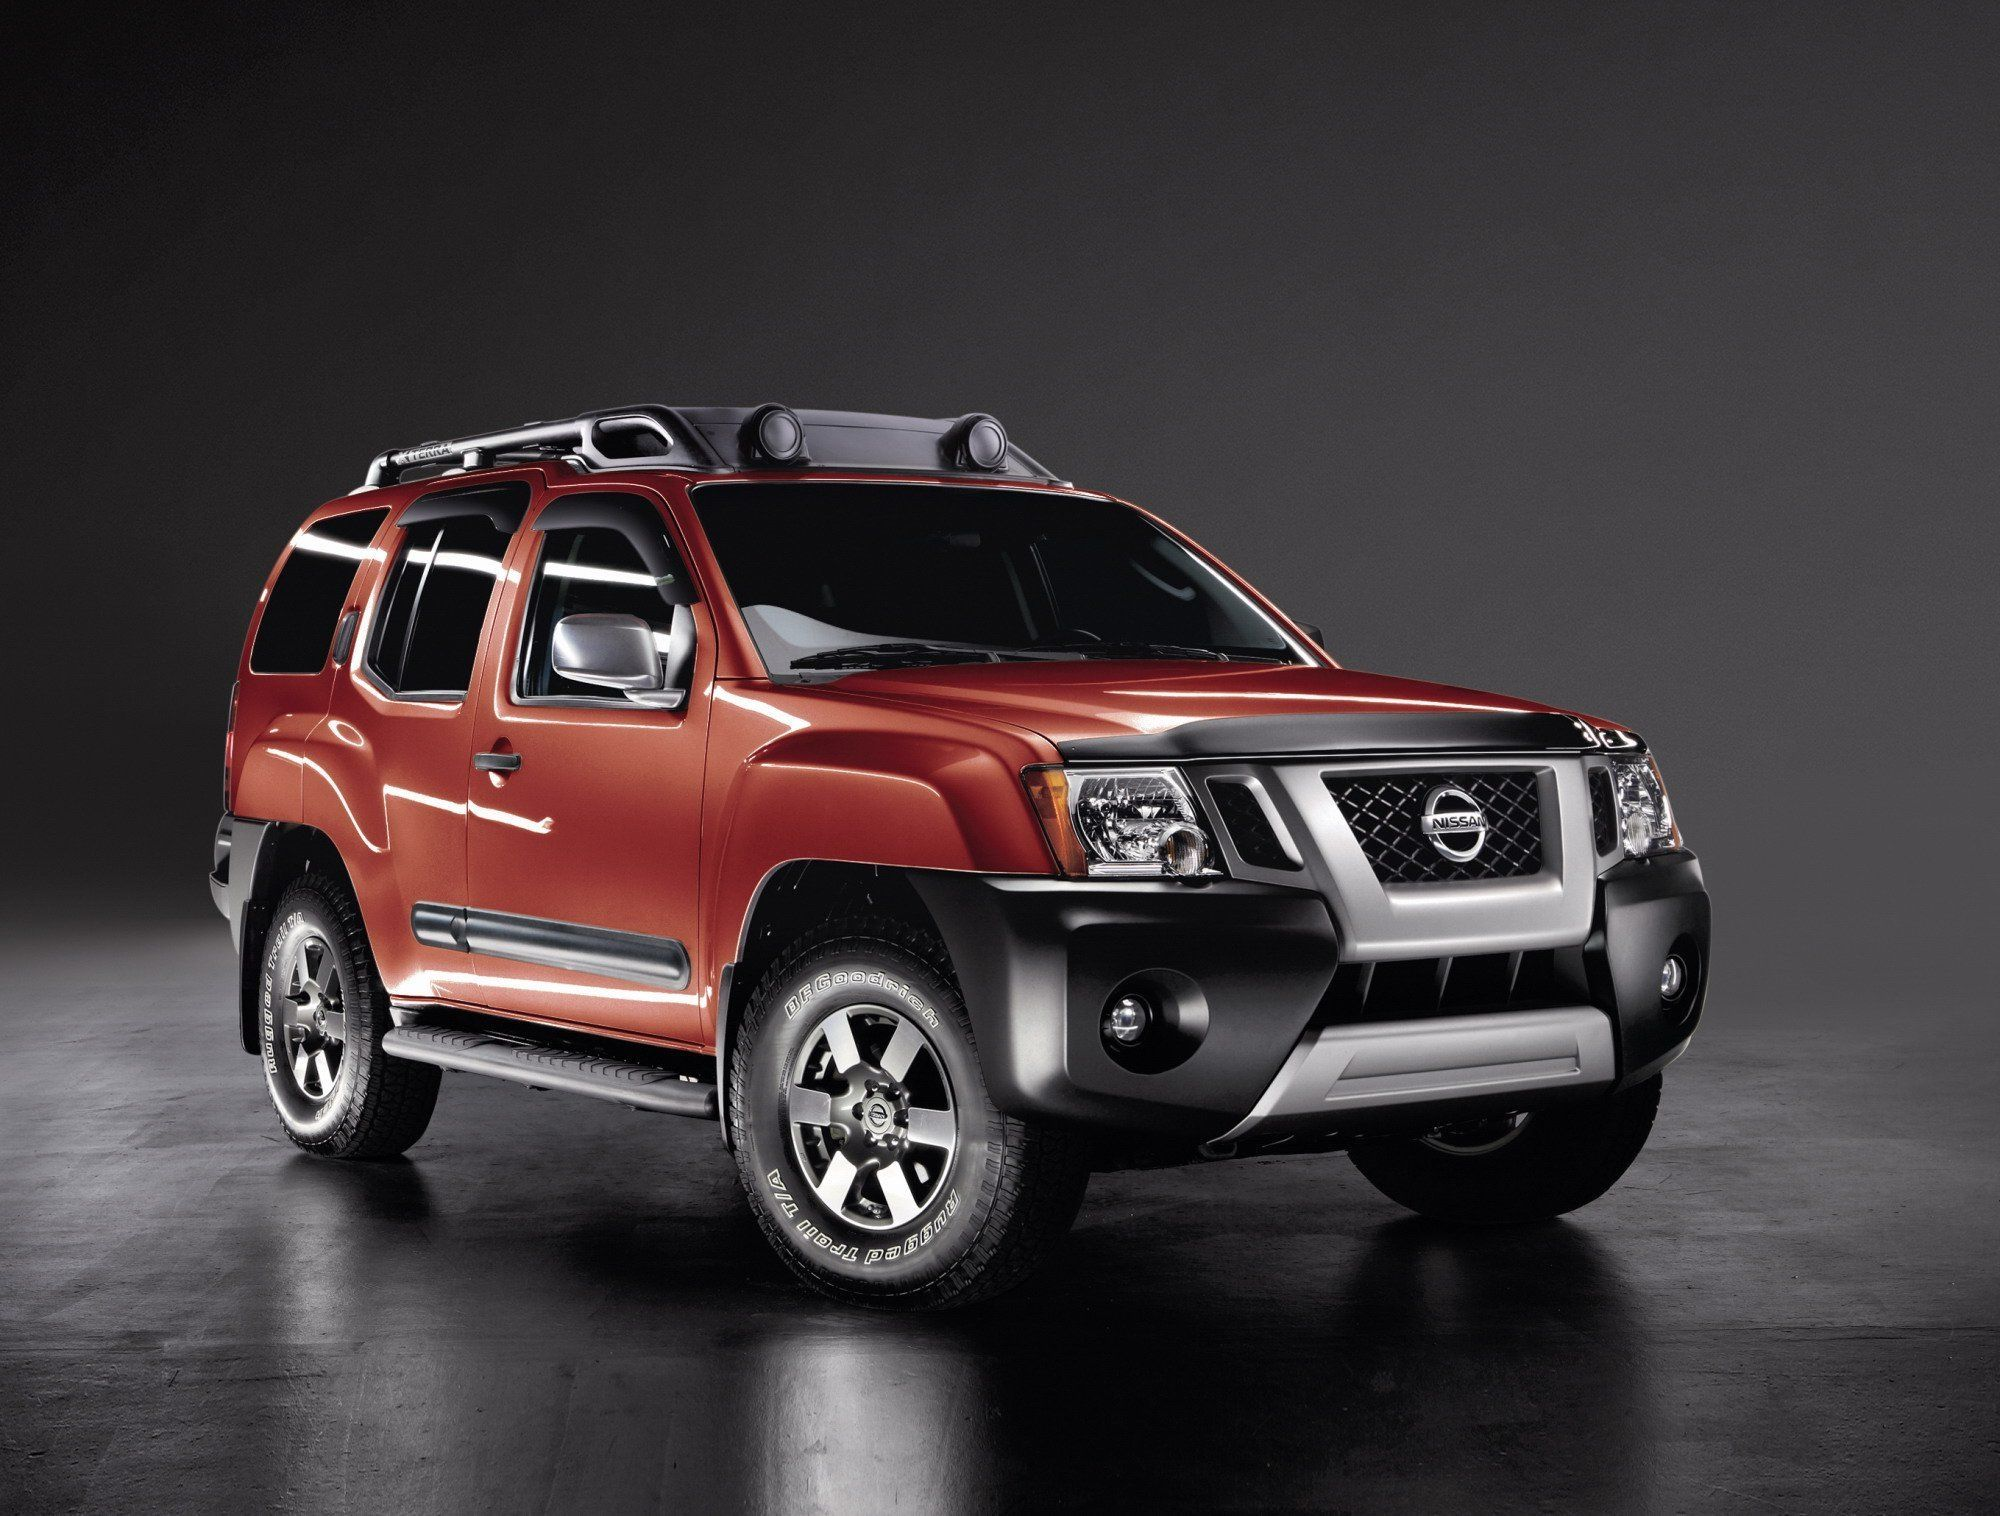 The 2020 Nissan Xterra First Drive Cars Review 2019 Nissan Xterra 2015 Nissan Xterra Nissan